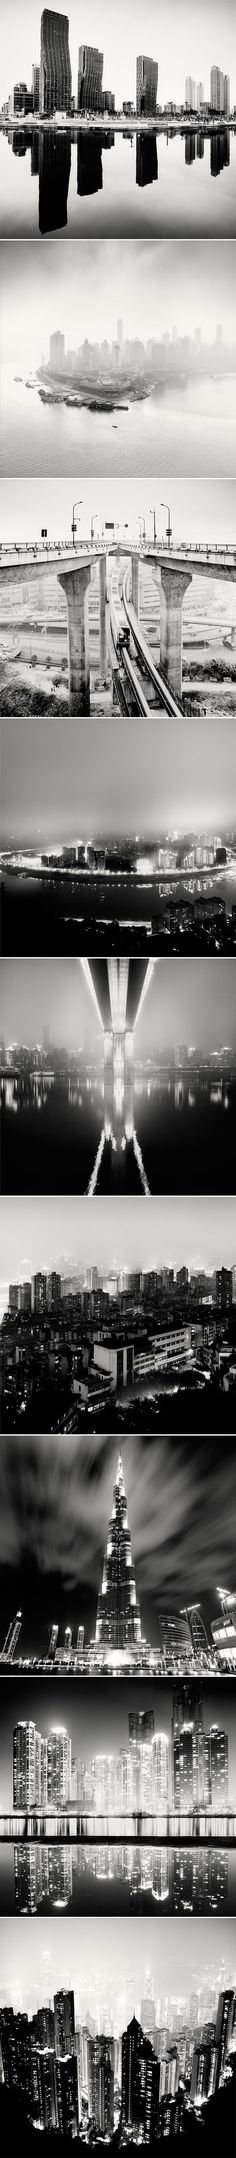 """Martin Stavars in Czestochowa, Poland) - """"City of Fog"""", Chongqing, China and """"Nightscapes"""" series. Cityscape Photography, Urban Photography, Night Photography, Color Photography, Black White Photos, Black And White Photography, Nature Pictures, Cool Pictures, We Will Rock You"""